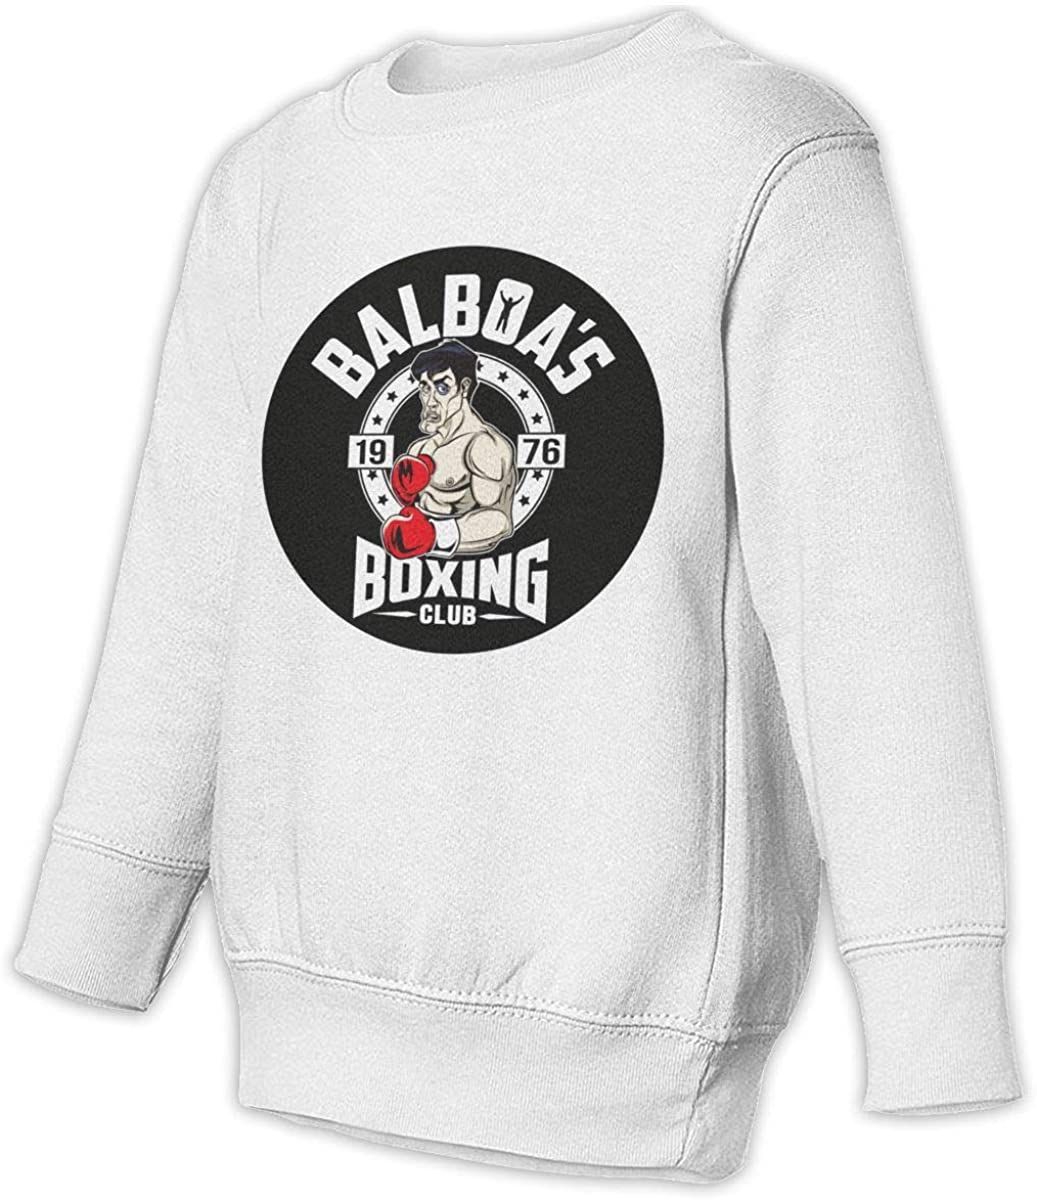 Rocky Balboa Toddler Juvenile Micro-Elastic Sleeve Round Neck Design is Easy to Put On and Take Off Sweatshirt